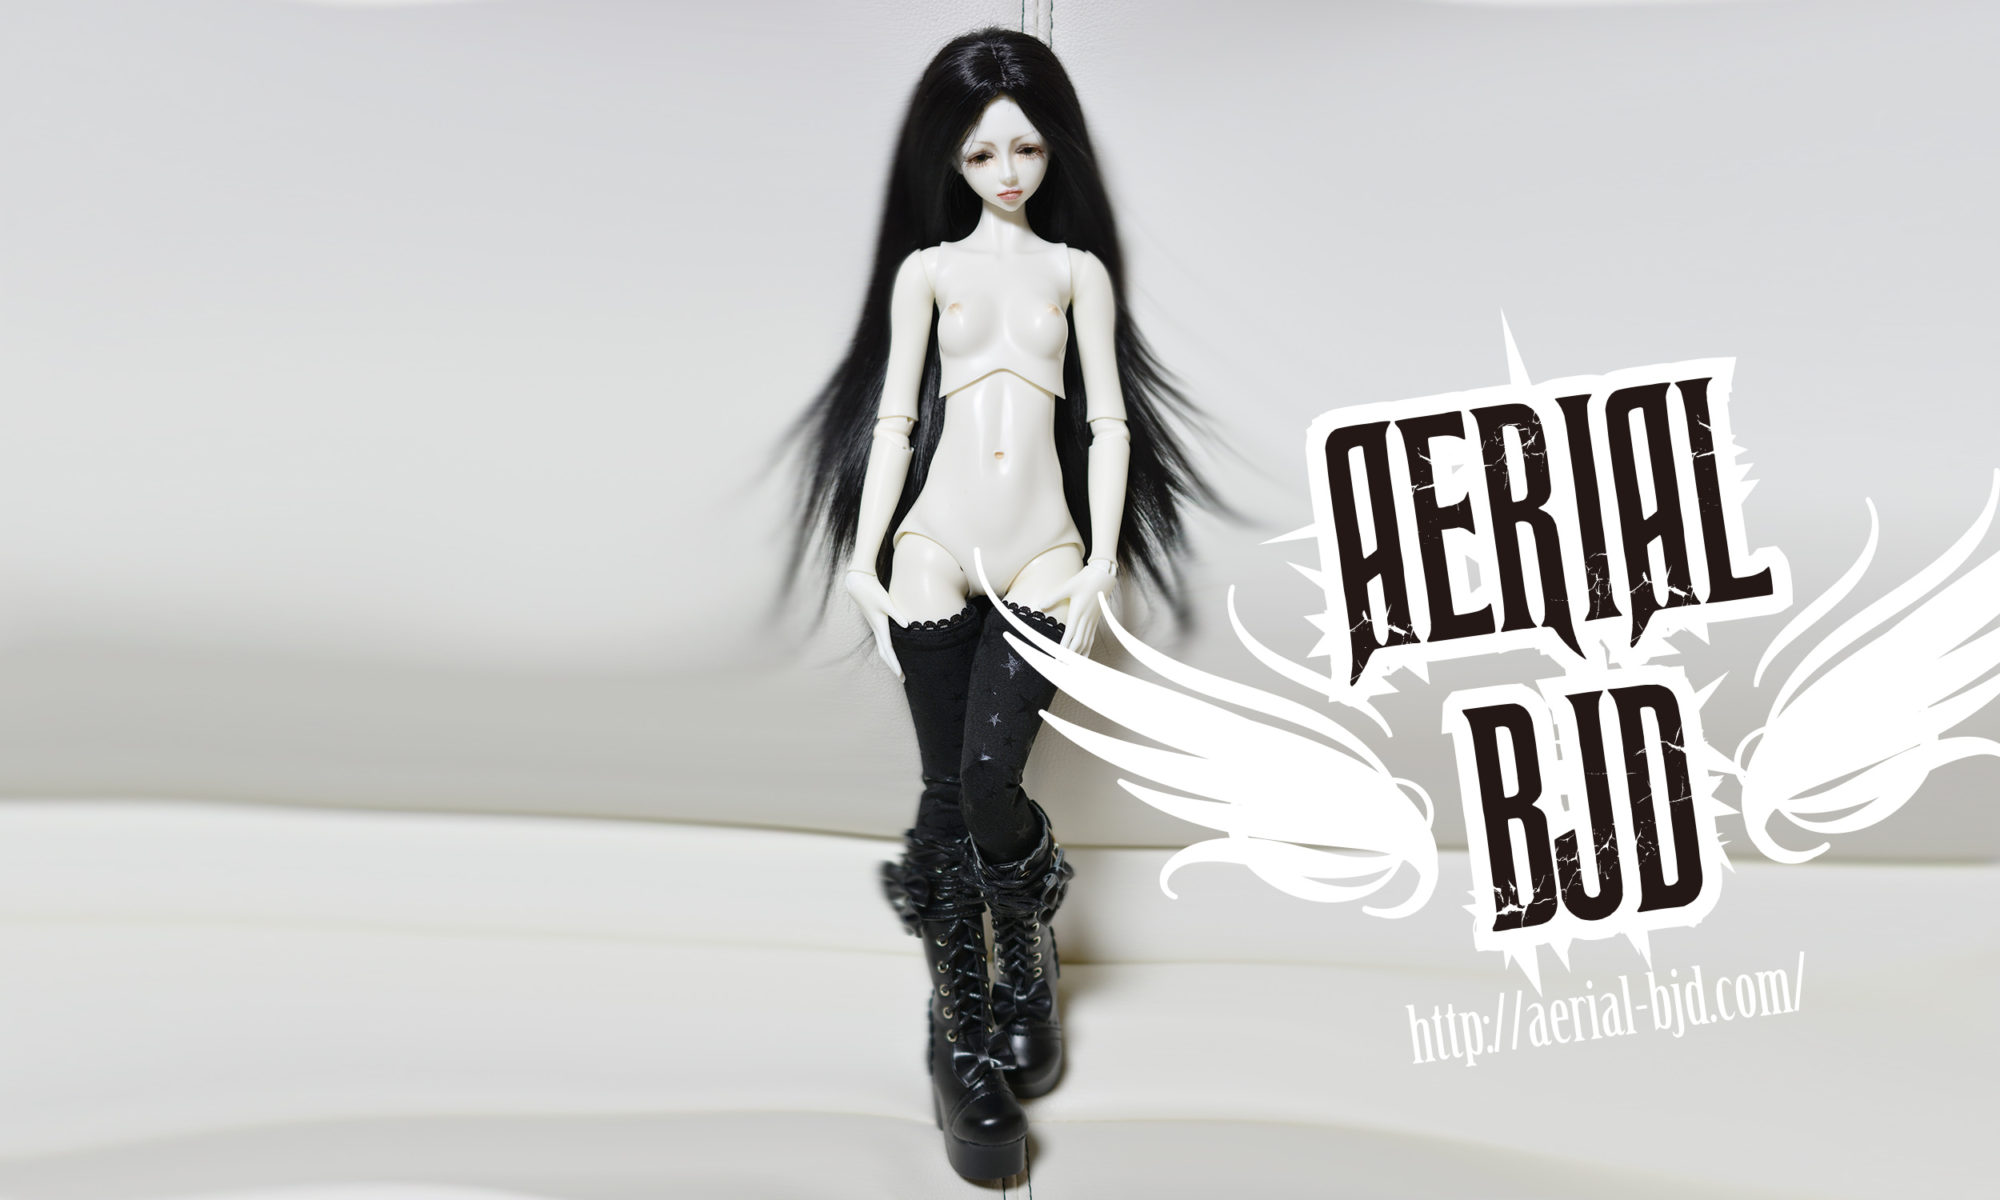 AERIALBJD White Aaliyah Background Image